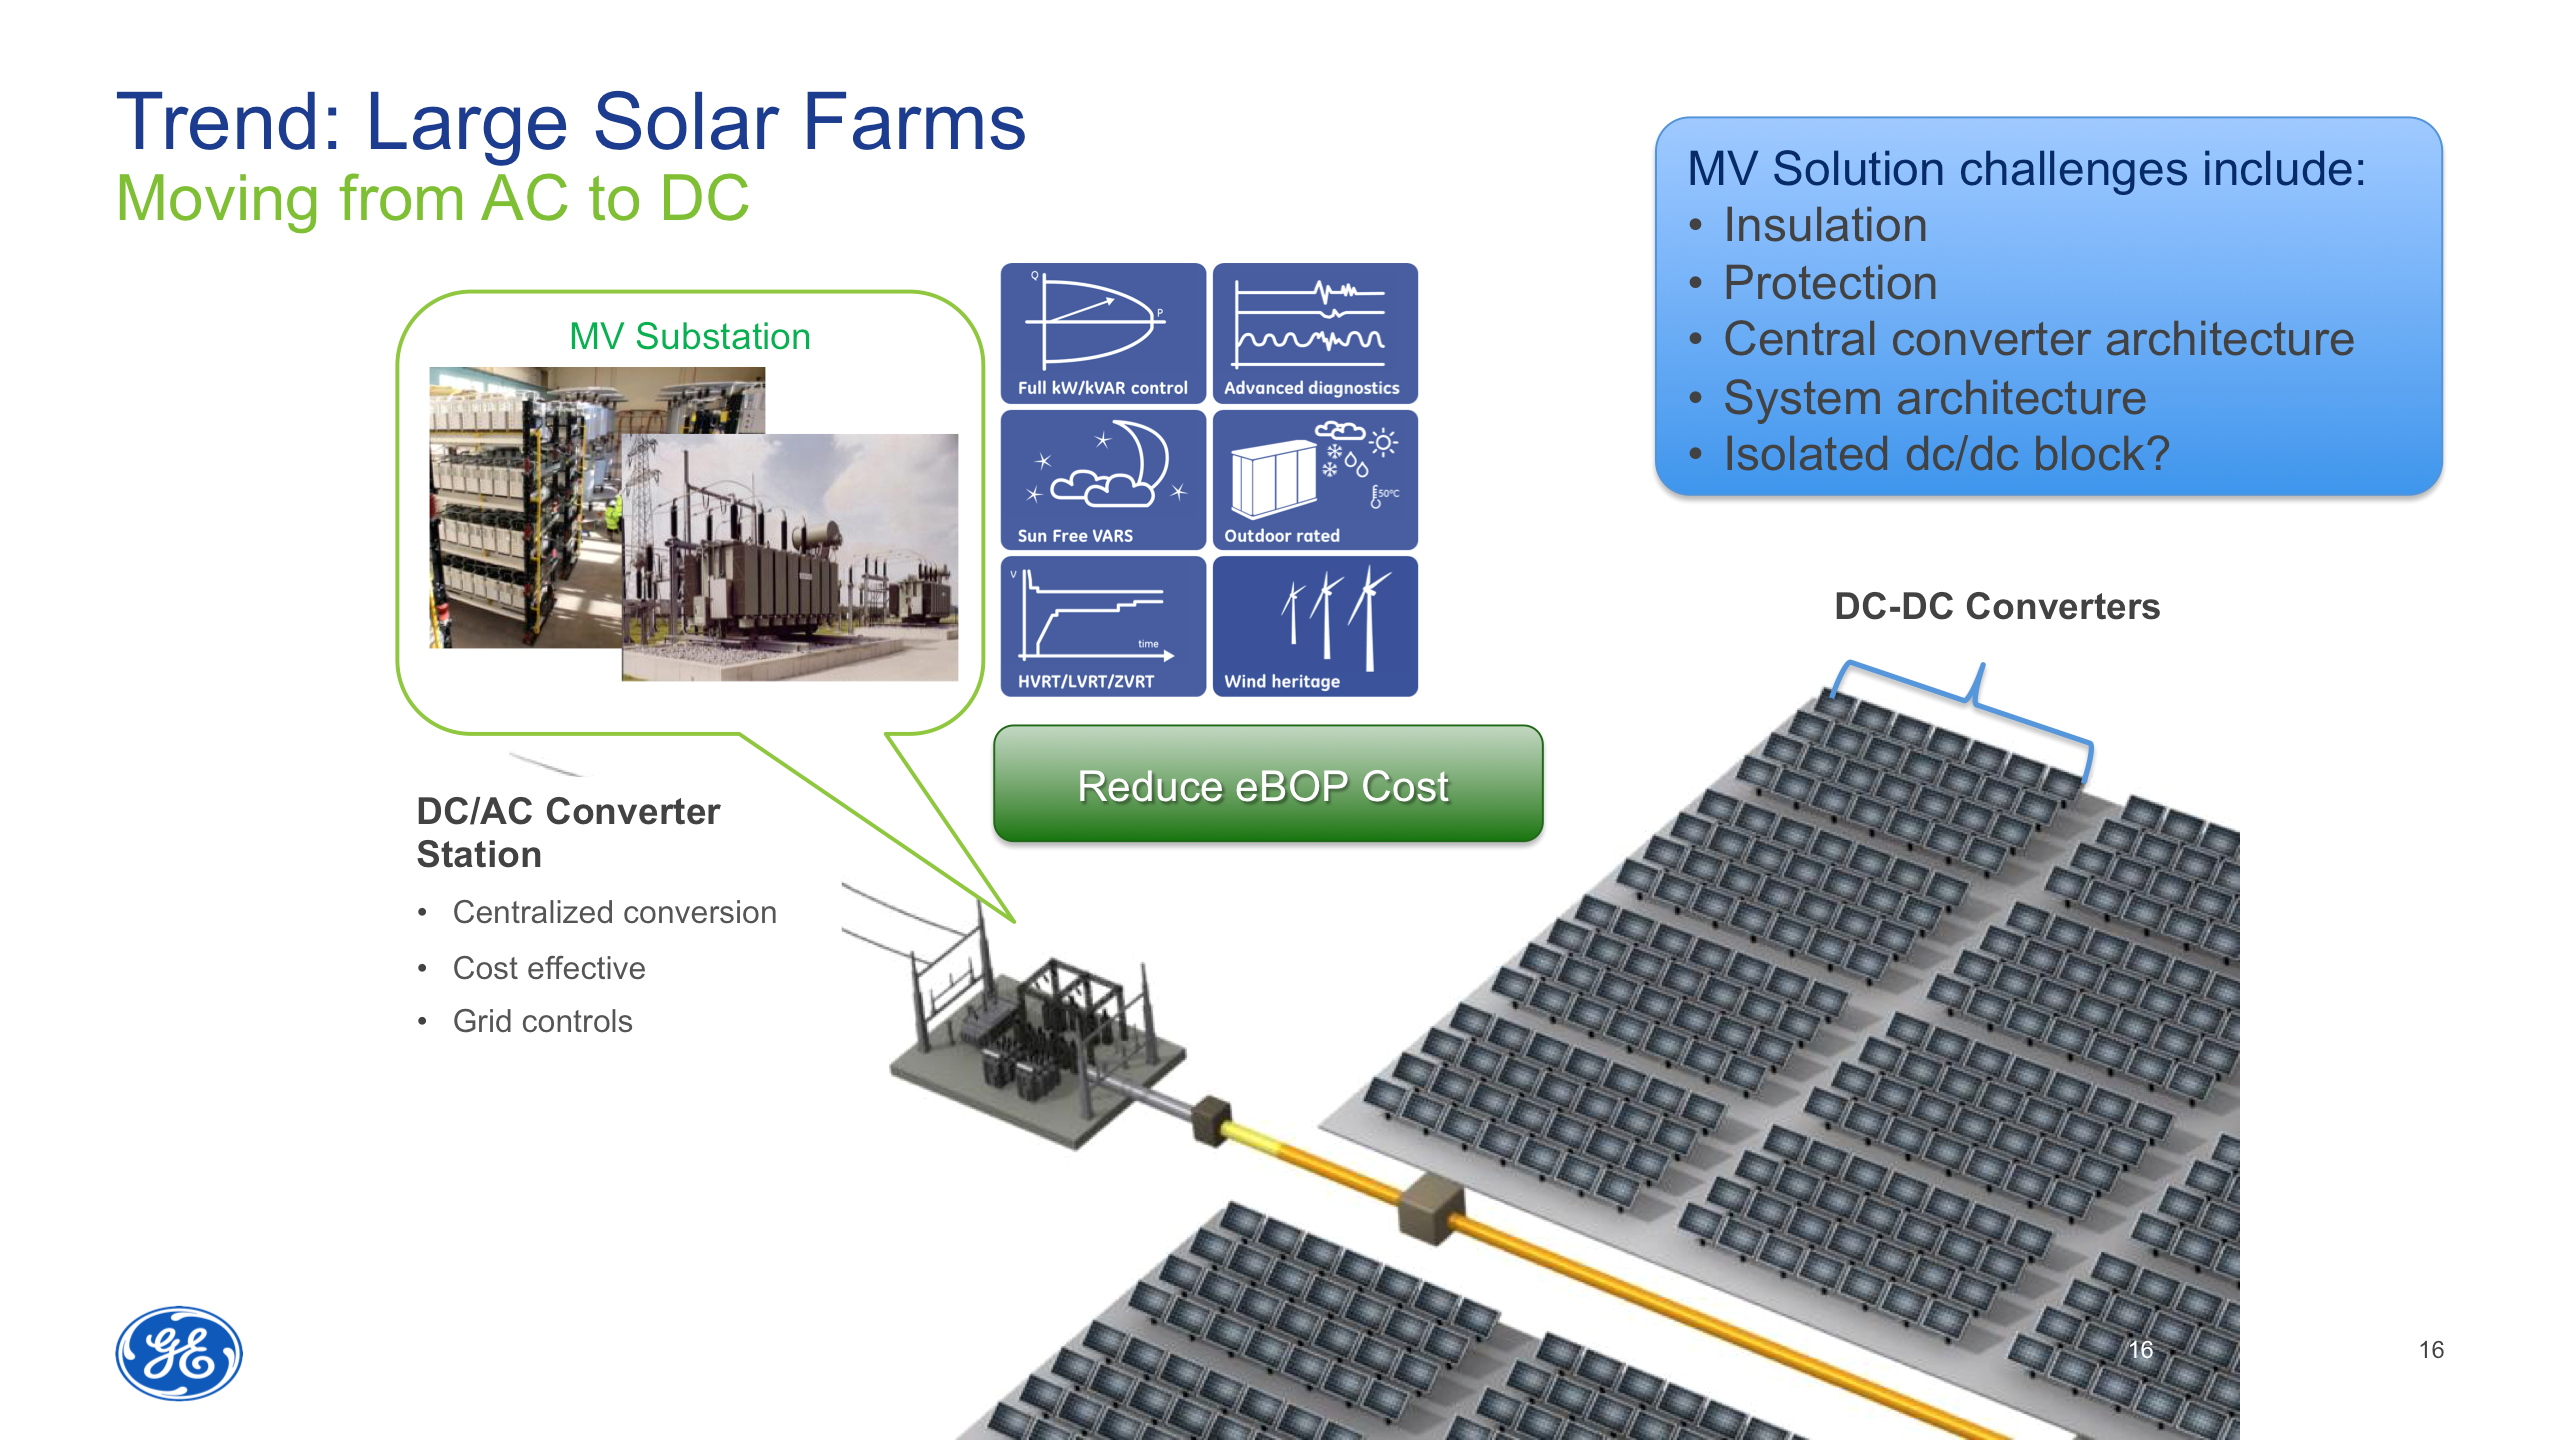 GE Power Conversion is rumored to have built a medium voltage PV test power plant for MVDC inverters fed by DC-DC converters, perhaps sourced from a third party, and a low voltage solar array. Image: GE